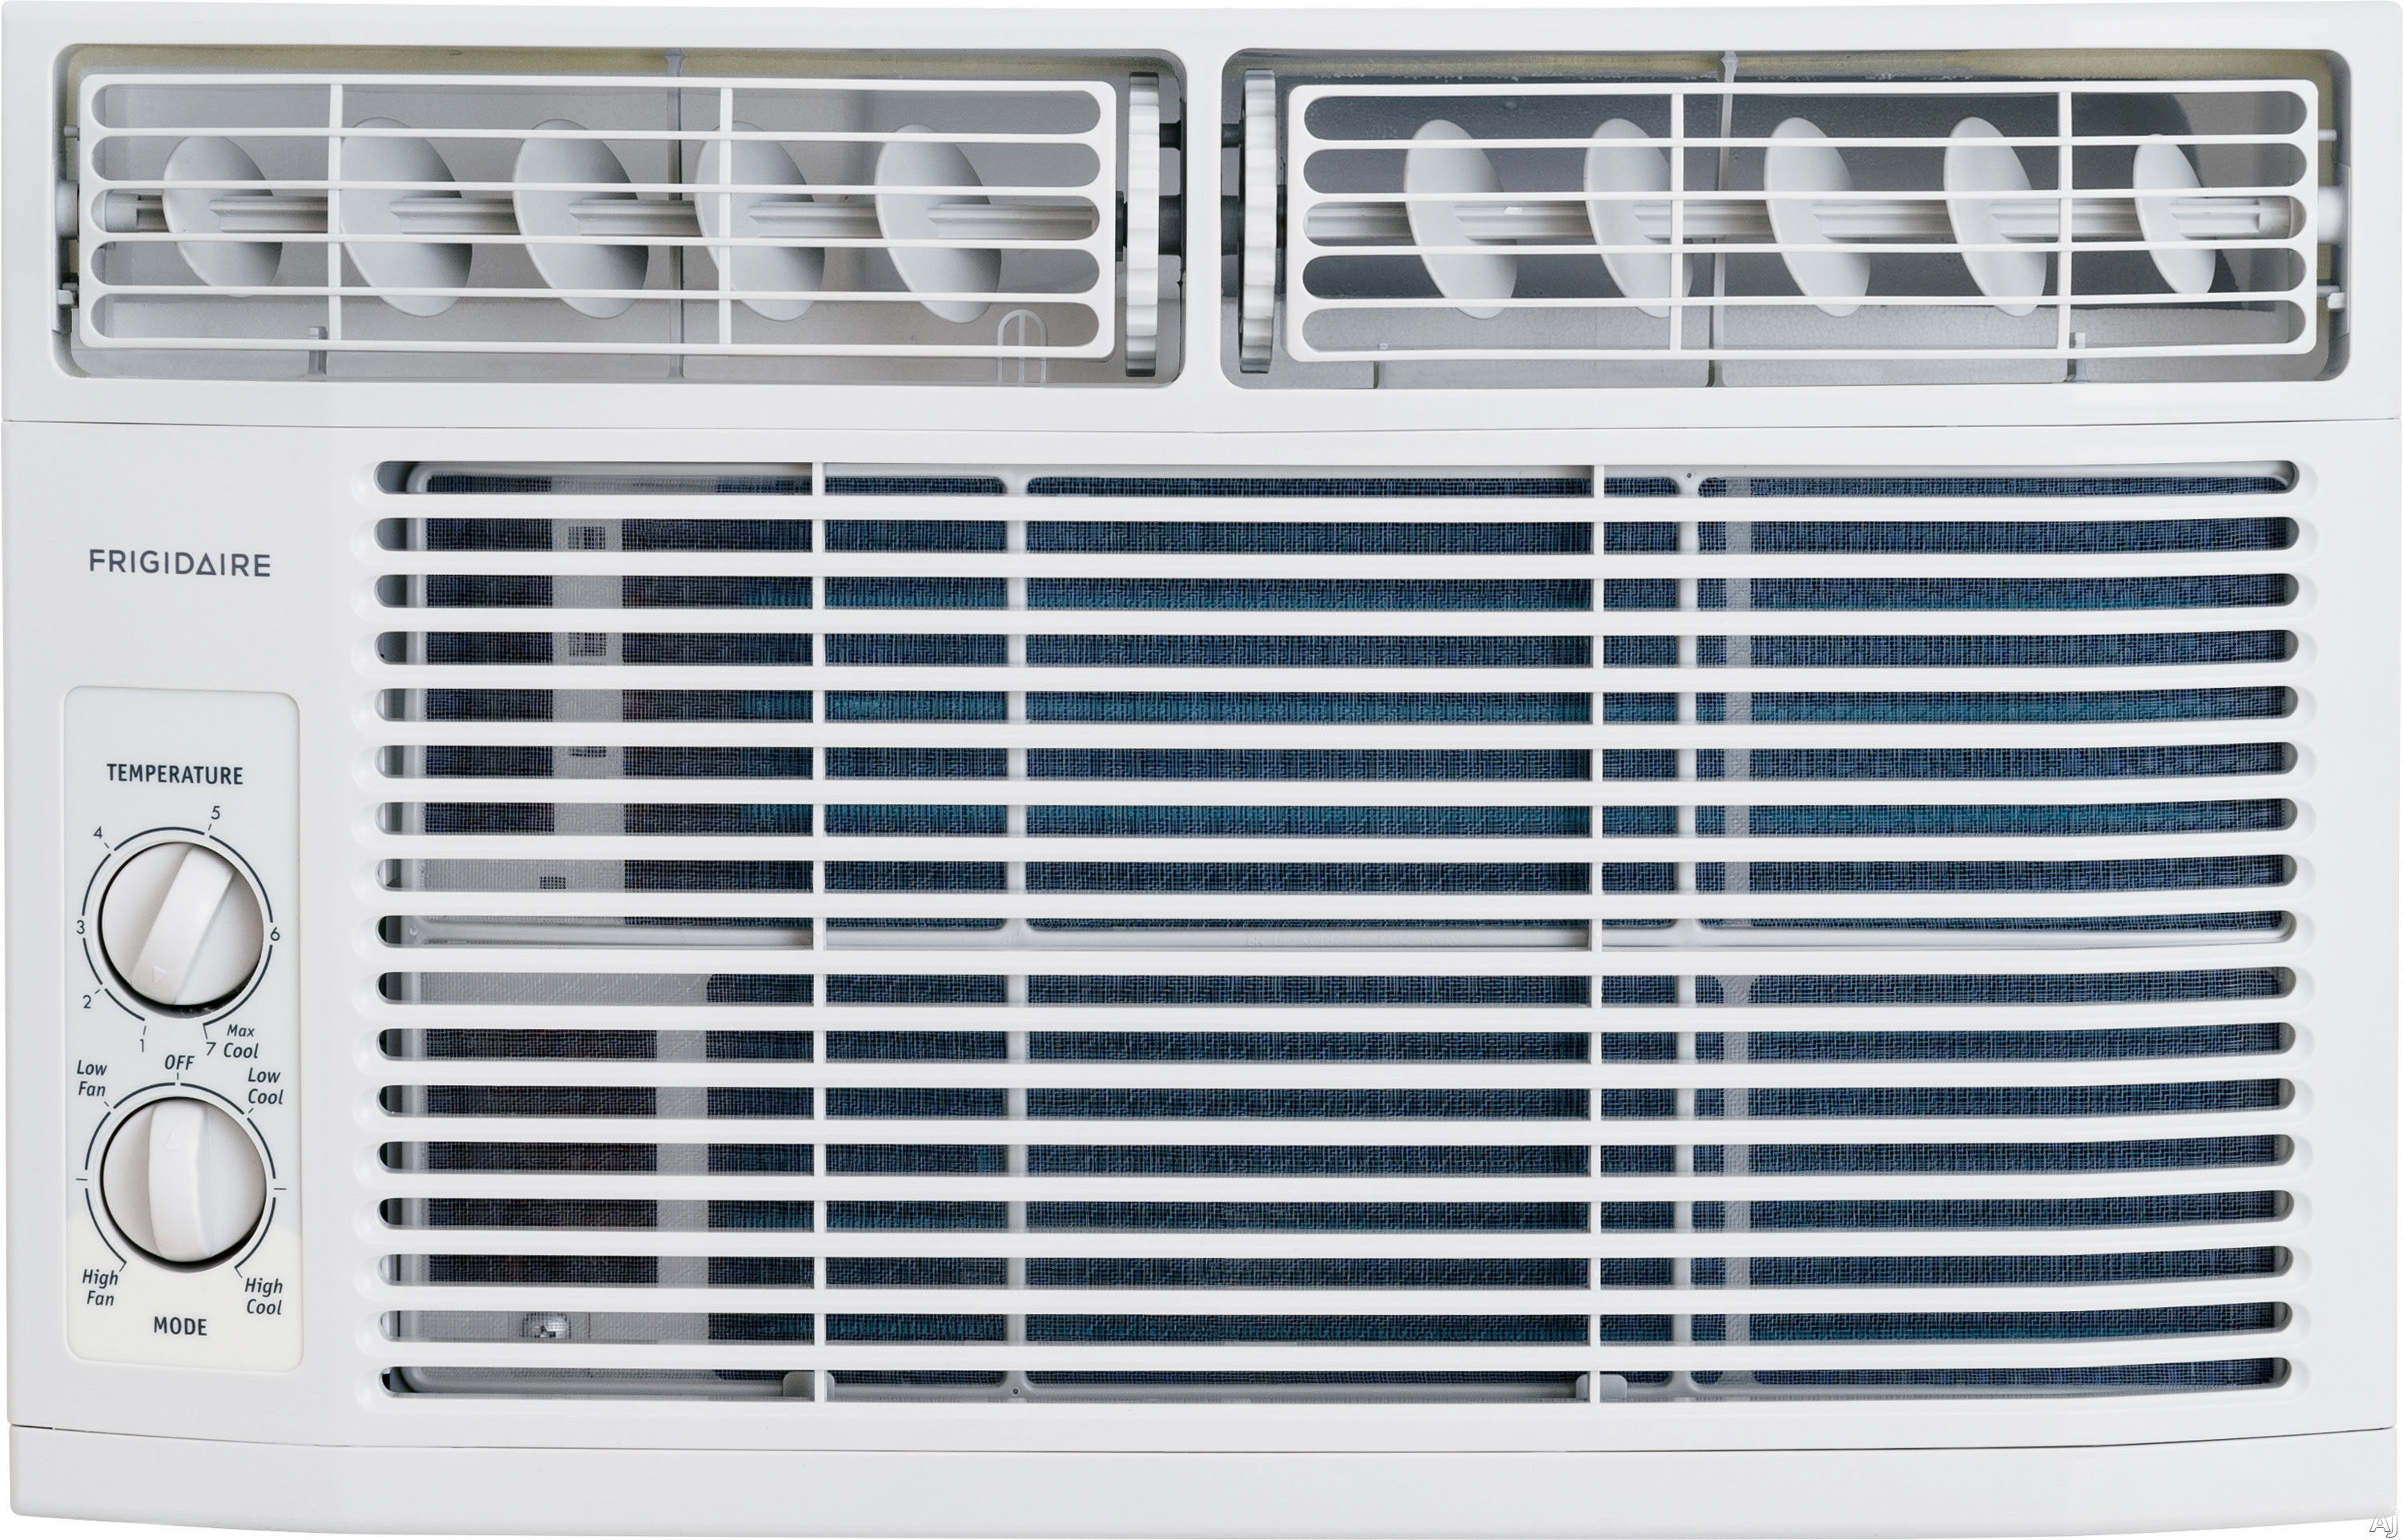 Home > Air Conditioners > Room Air Conditioners > FFRA0611Q1 #1F303F